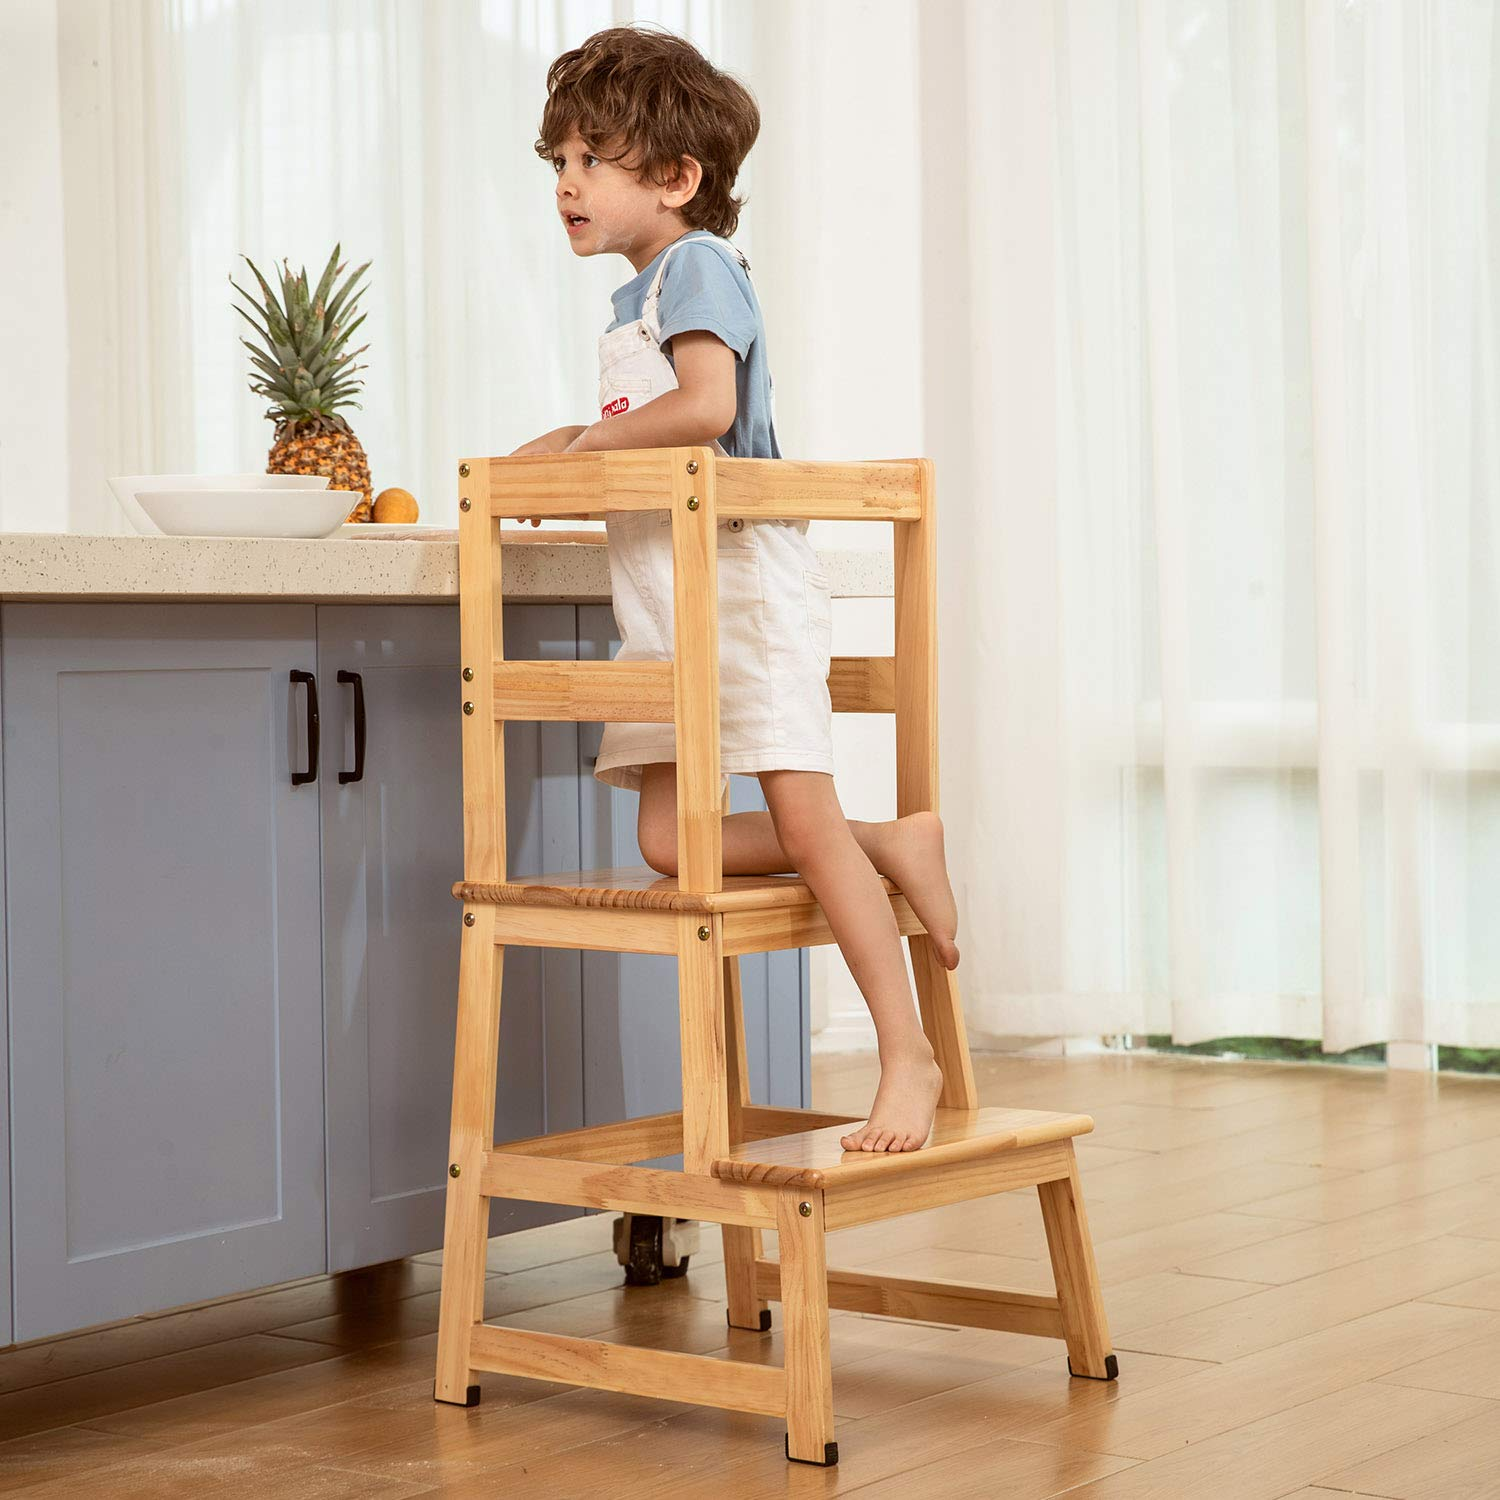 Amazon Com Kitchen Helper Step Stool For Kids And Toddlers With Safety Rail Children Standing Tower For Kitchen Counter Mothers Helper Kids Learning Stool Solid Wood Construction Natural Baby